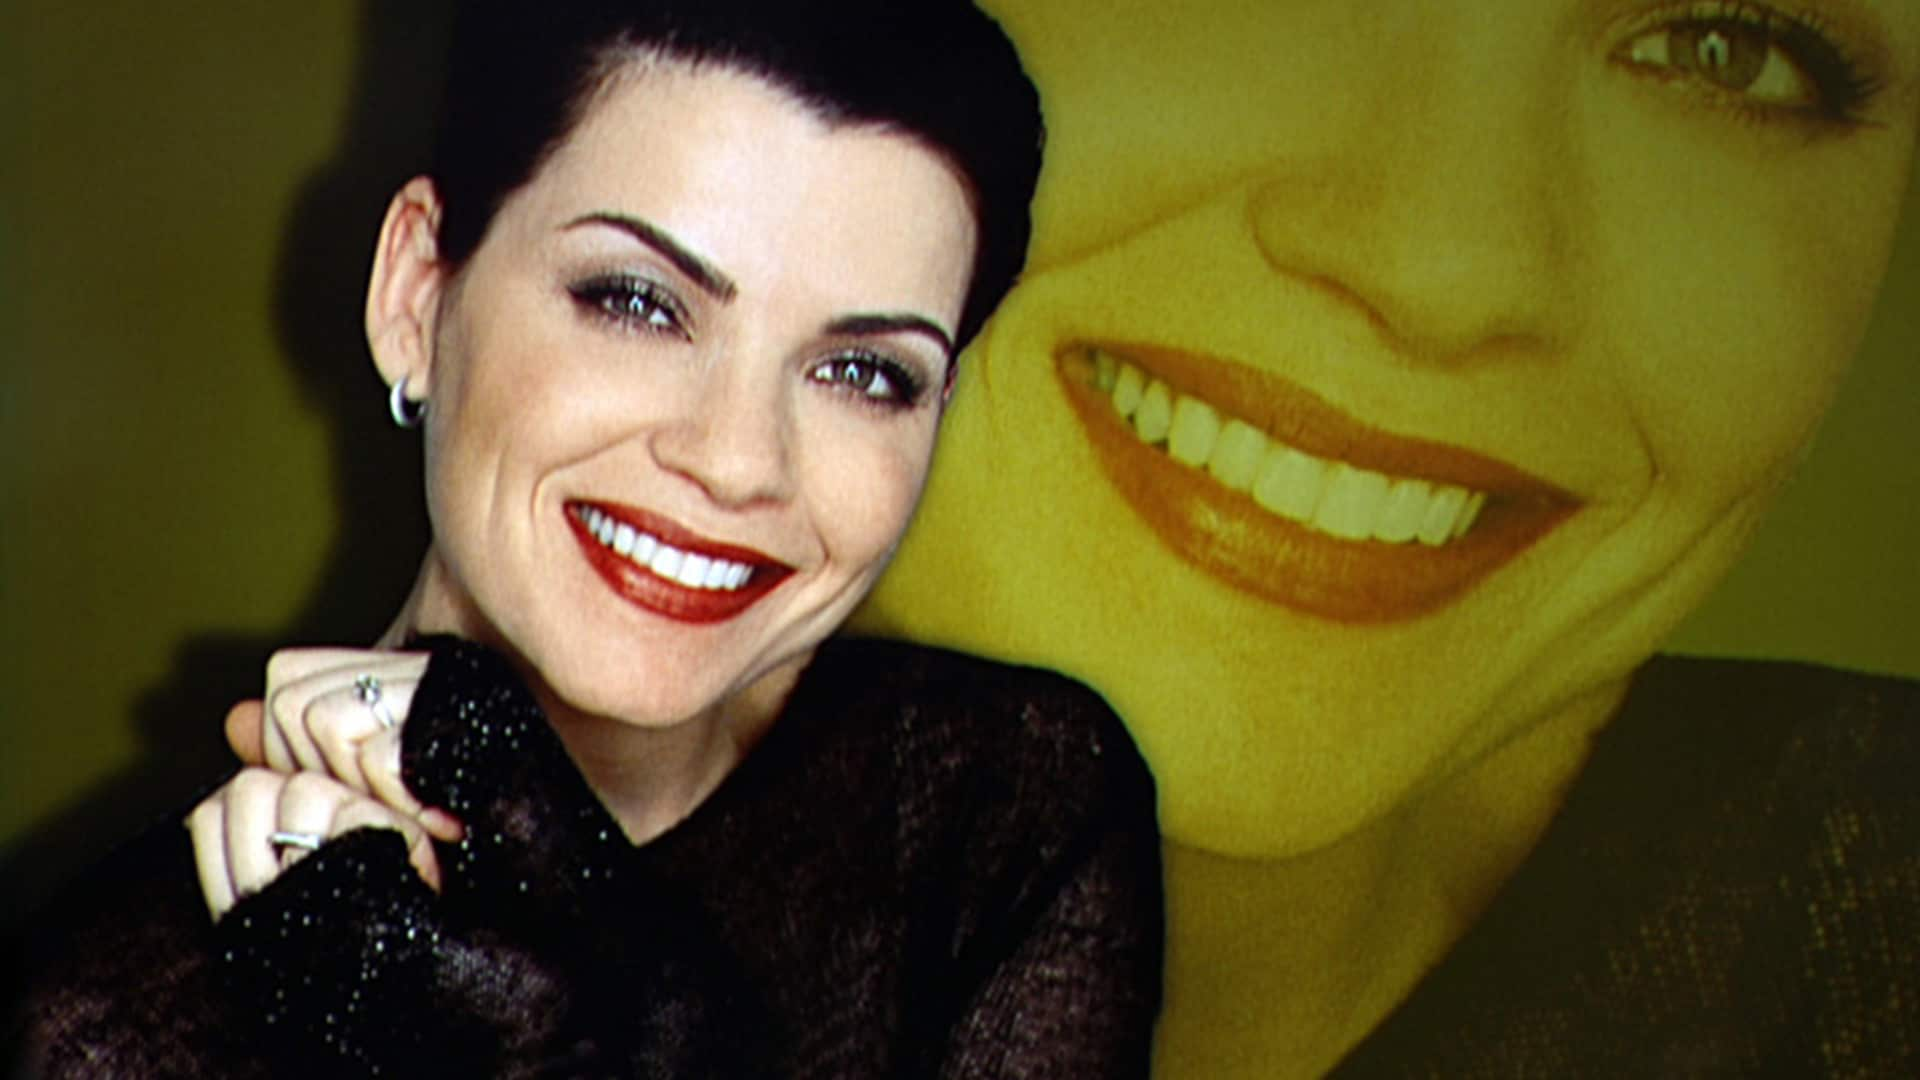 Julianna Margulies: February 12, 2000